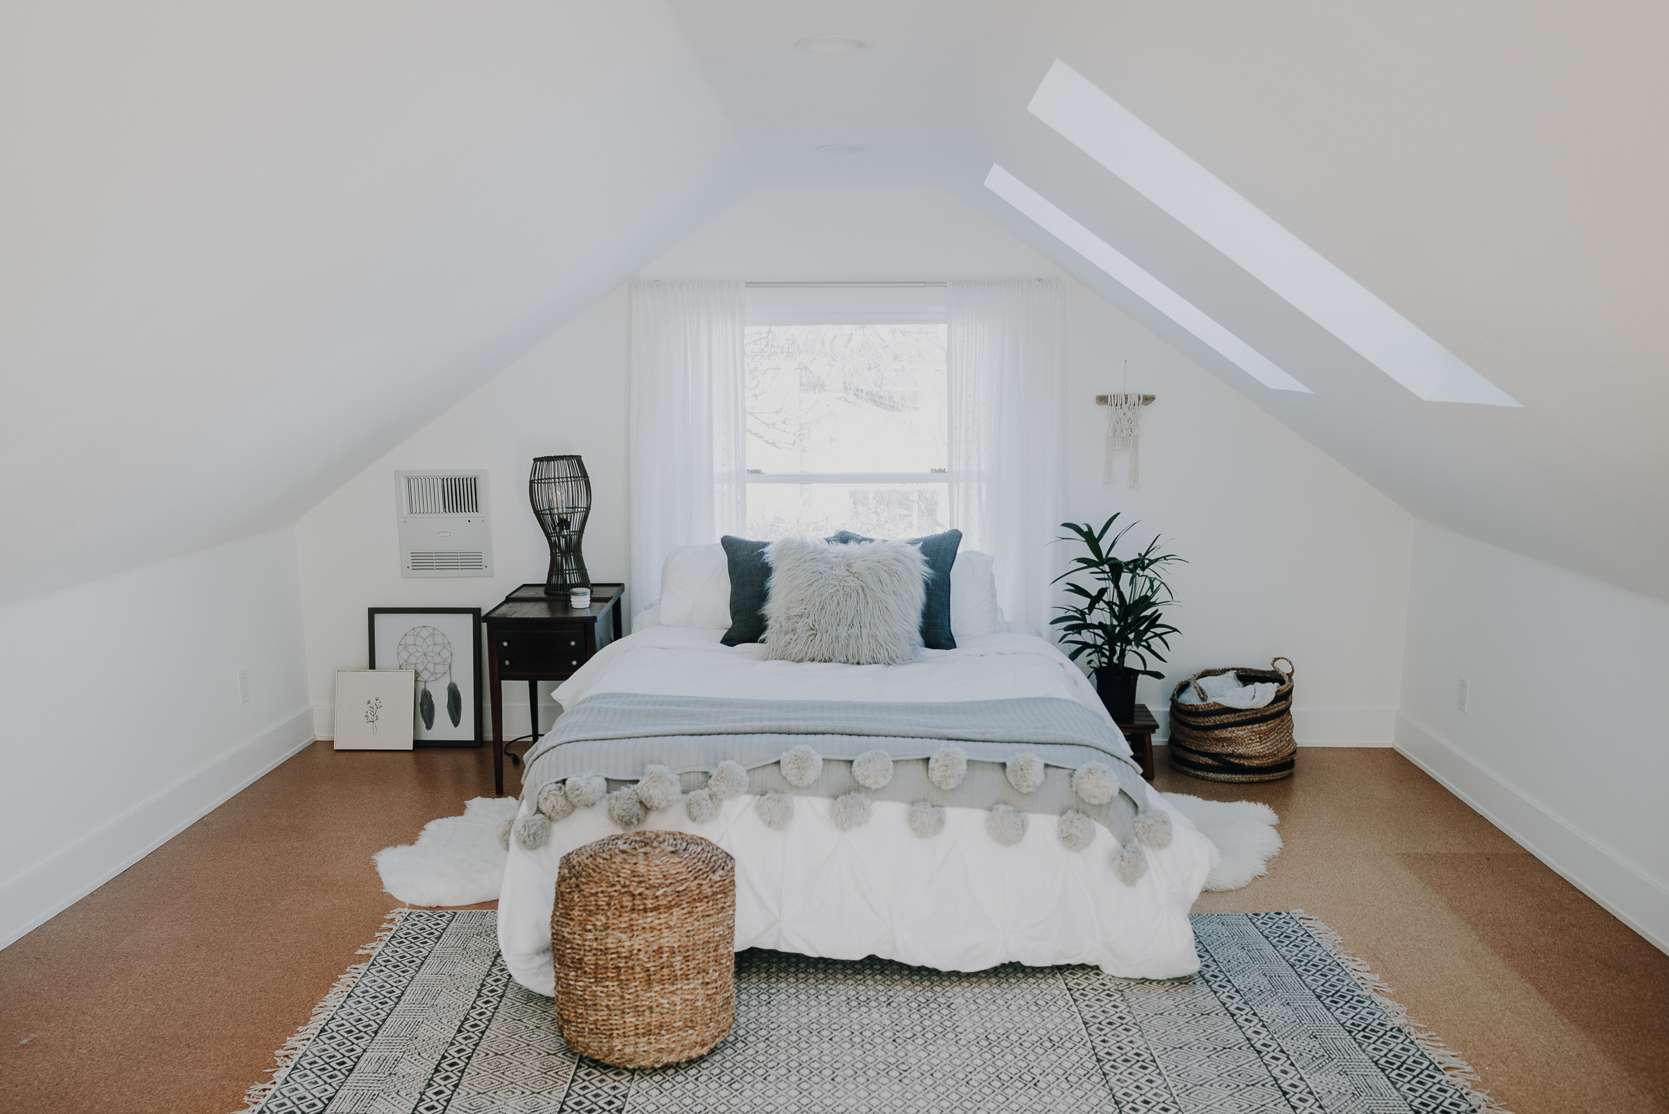 Boho-inspired bedroom with fringed throw blanket